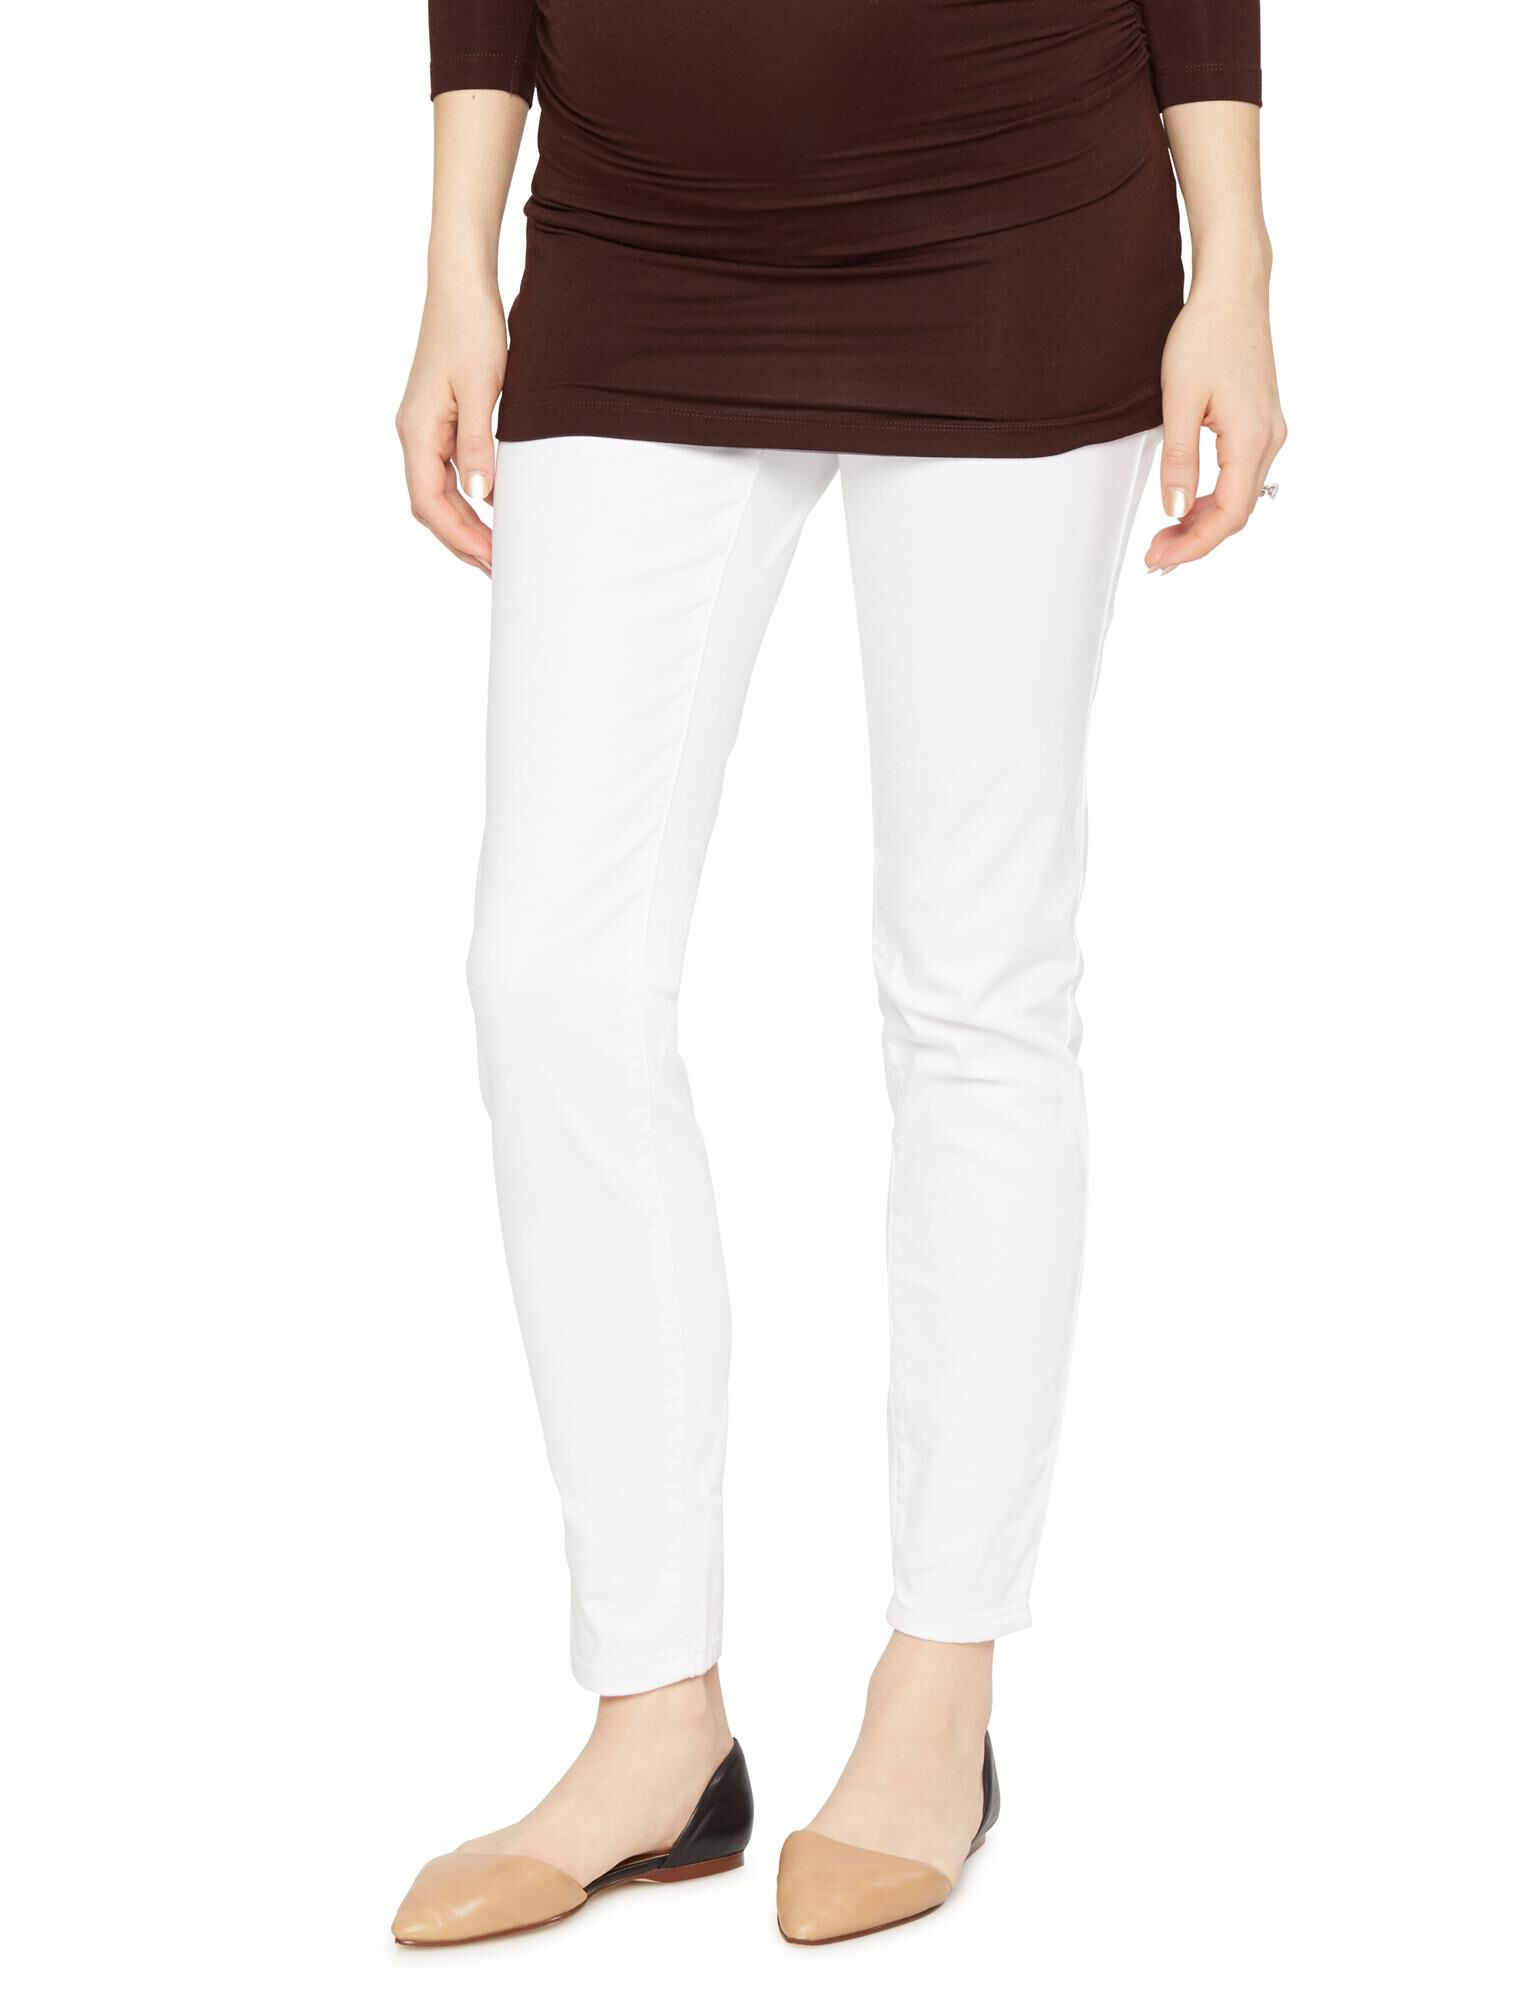 Luxe Essentials Denim Secret Fit Belly White Maternity Jeans